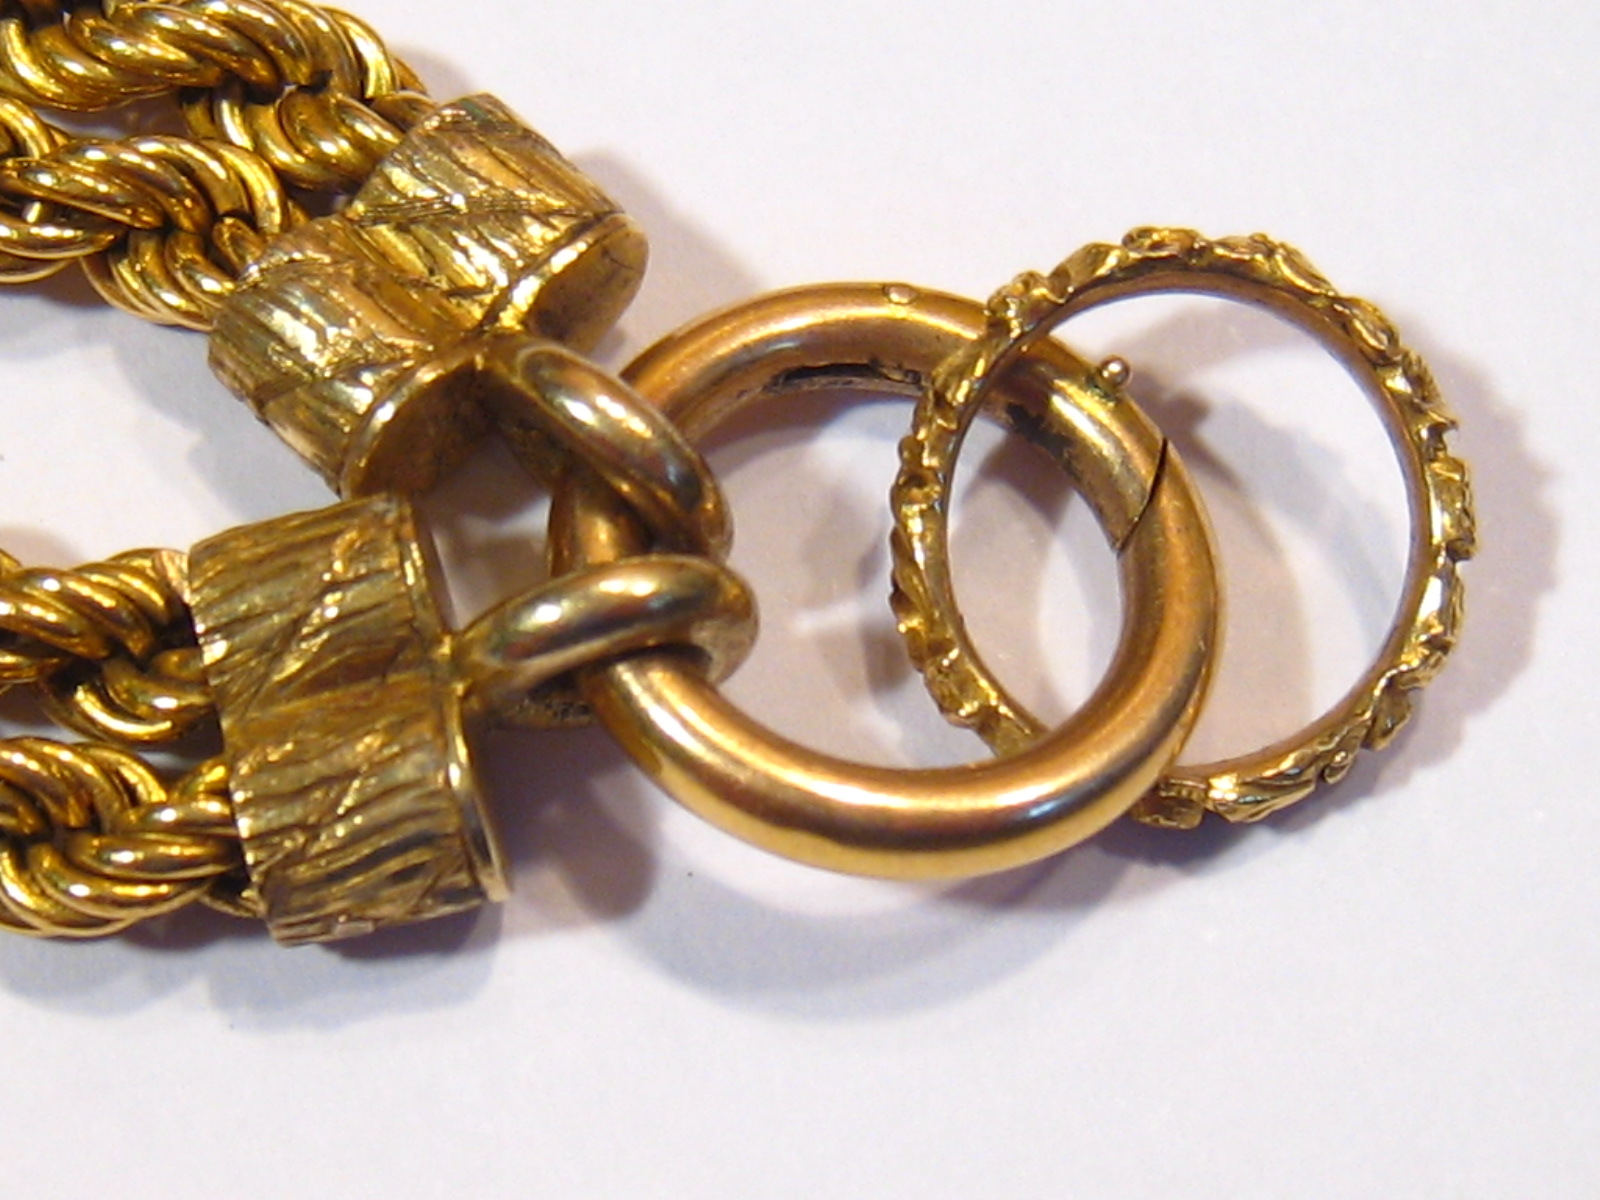 A fine antique gold necklace, the pendant symbolising love, designed as a heart shaped padlock - Image 6 of 15